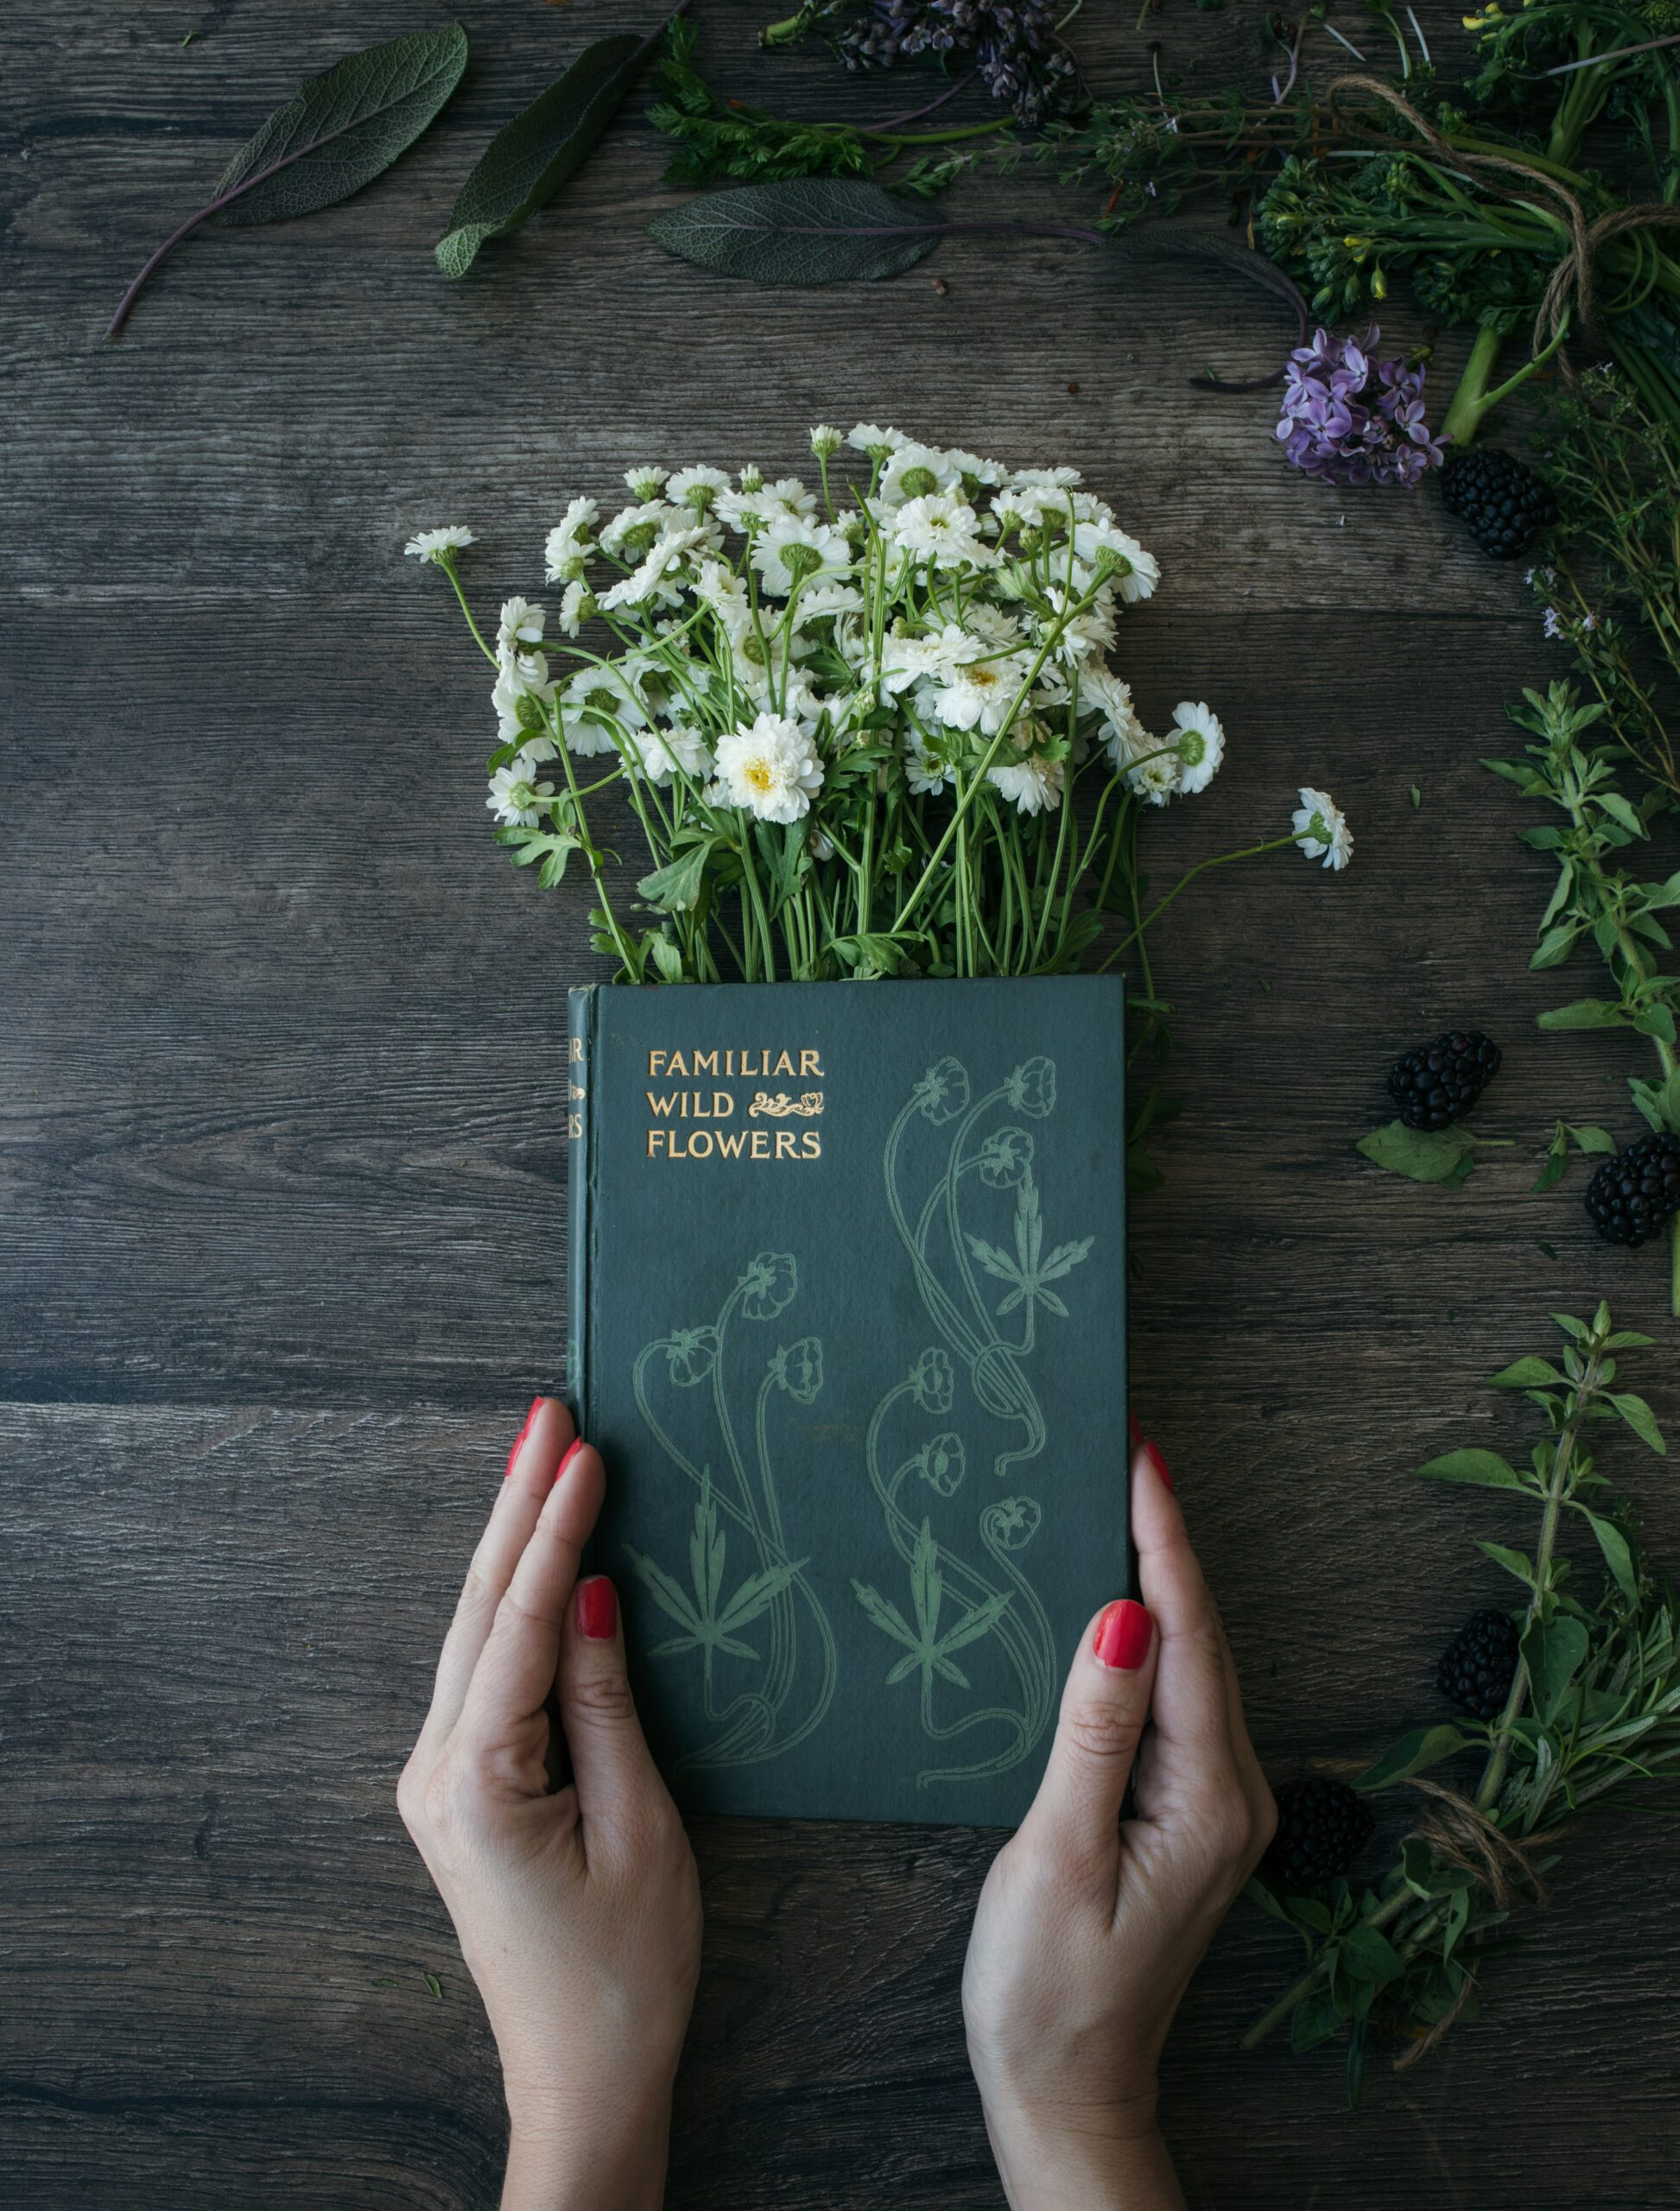 Potentizing Modern Herbalism with Story and Myth